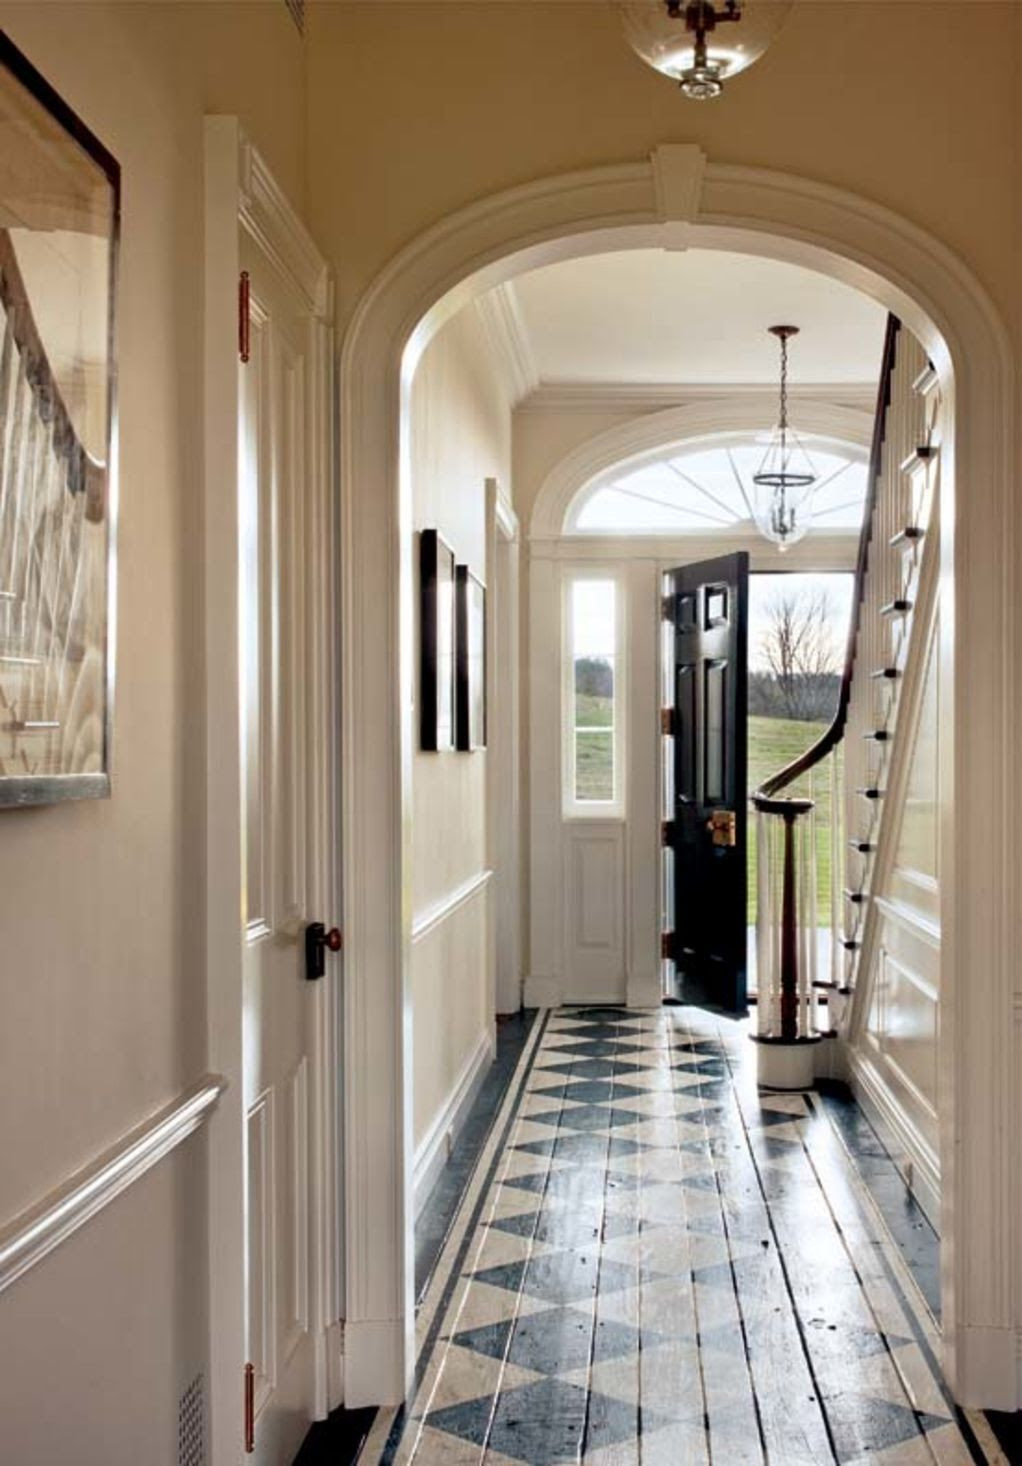 discount hardwood floors and molding of a new federal style farmhouse old house restoration products inside a new federal style farmhouse old house restoration products decorating